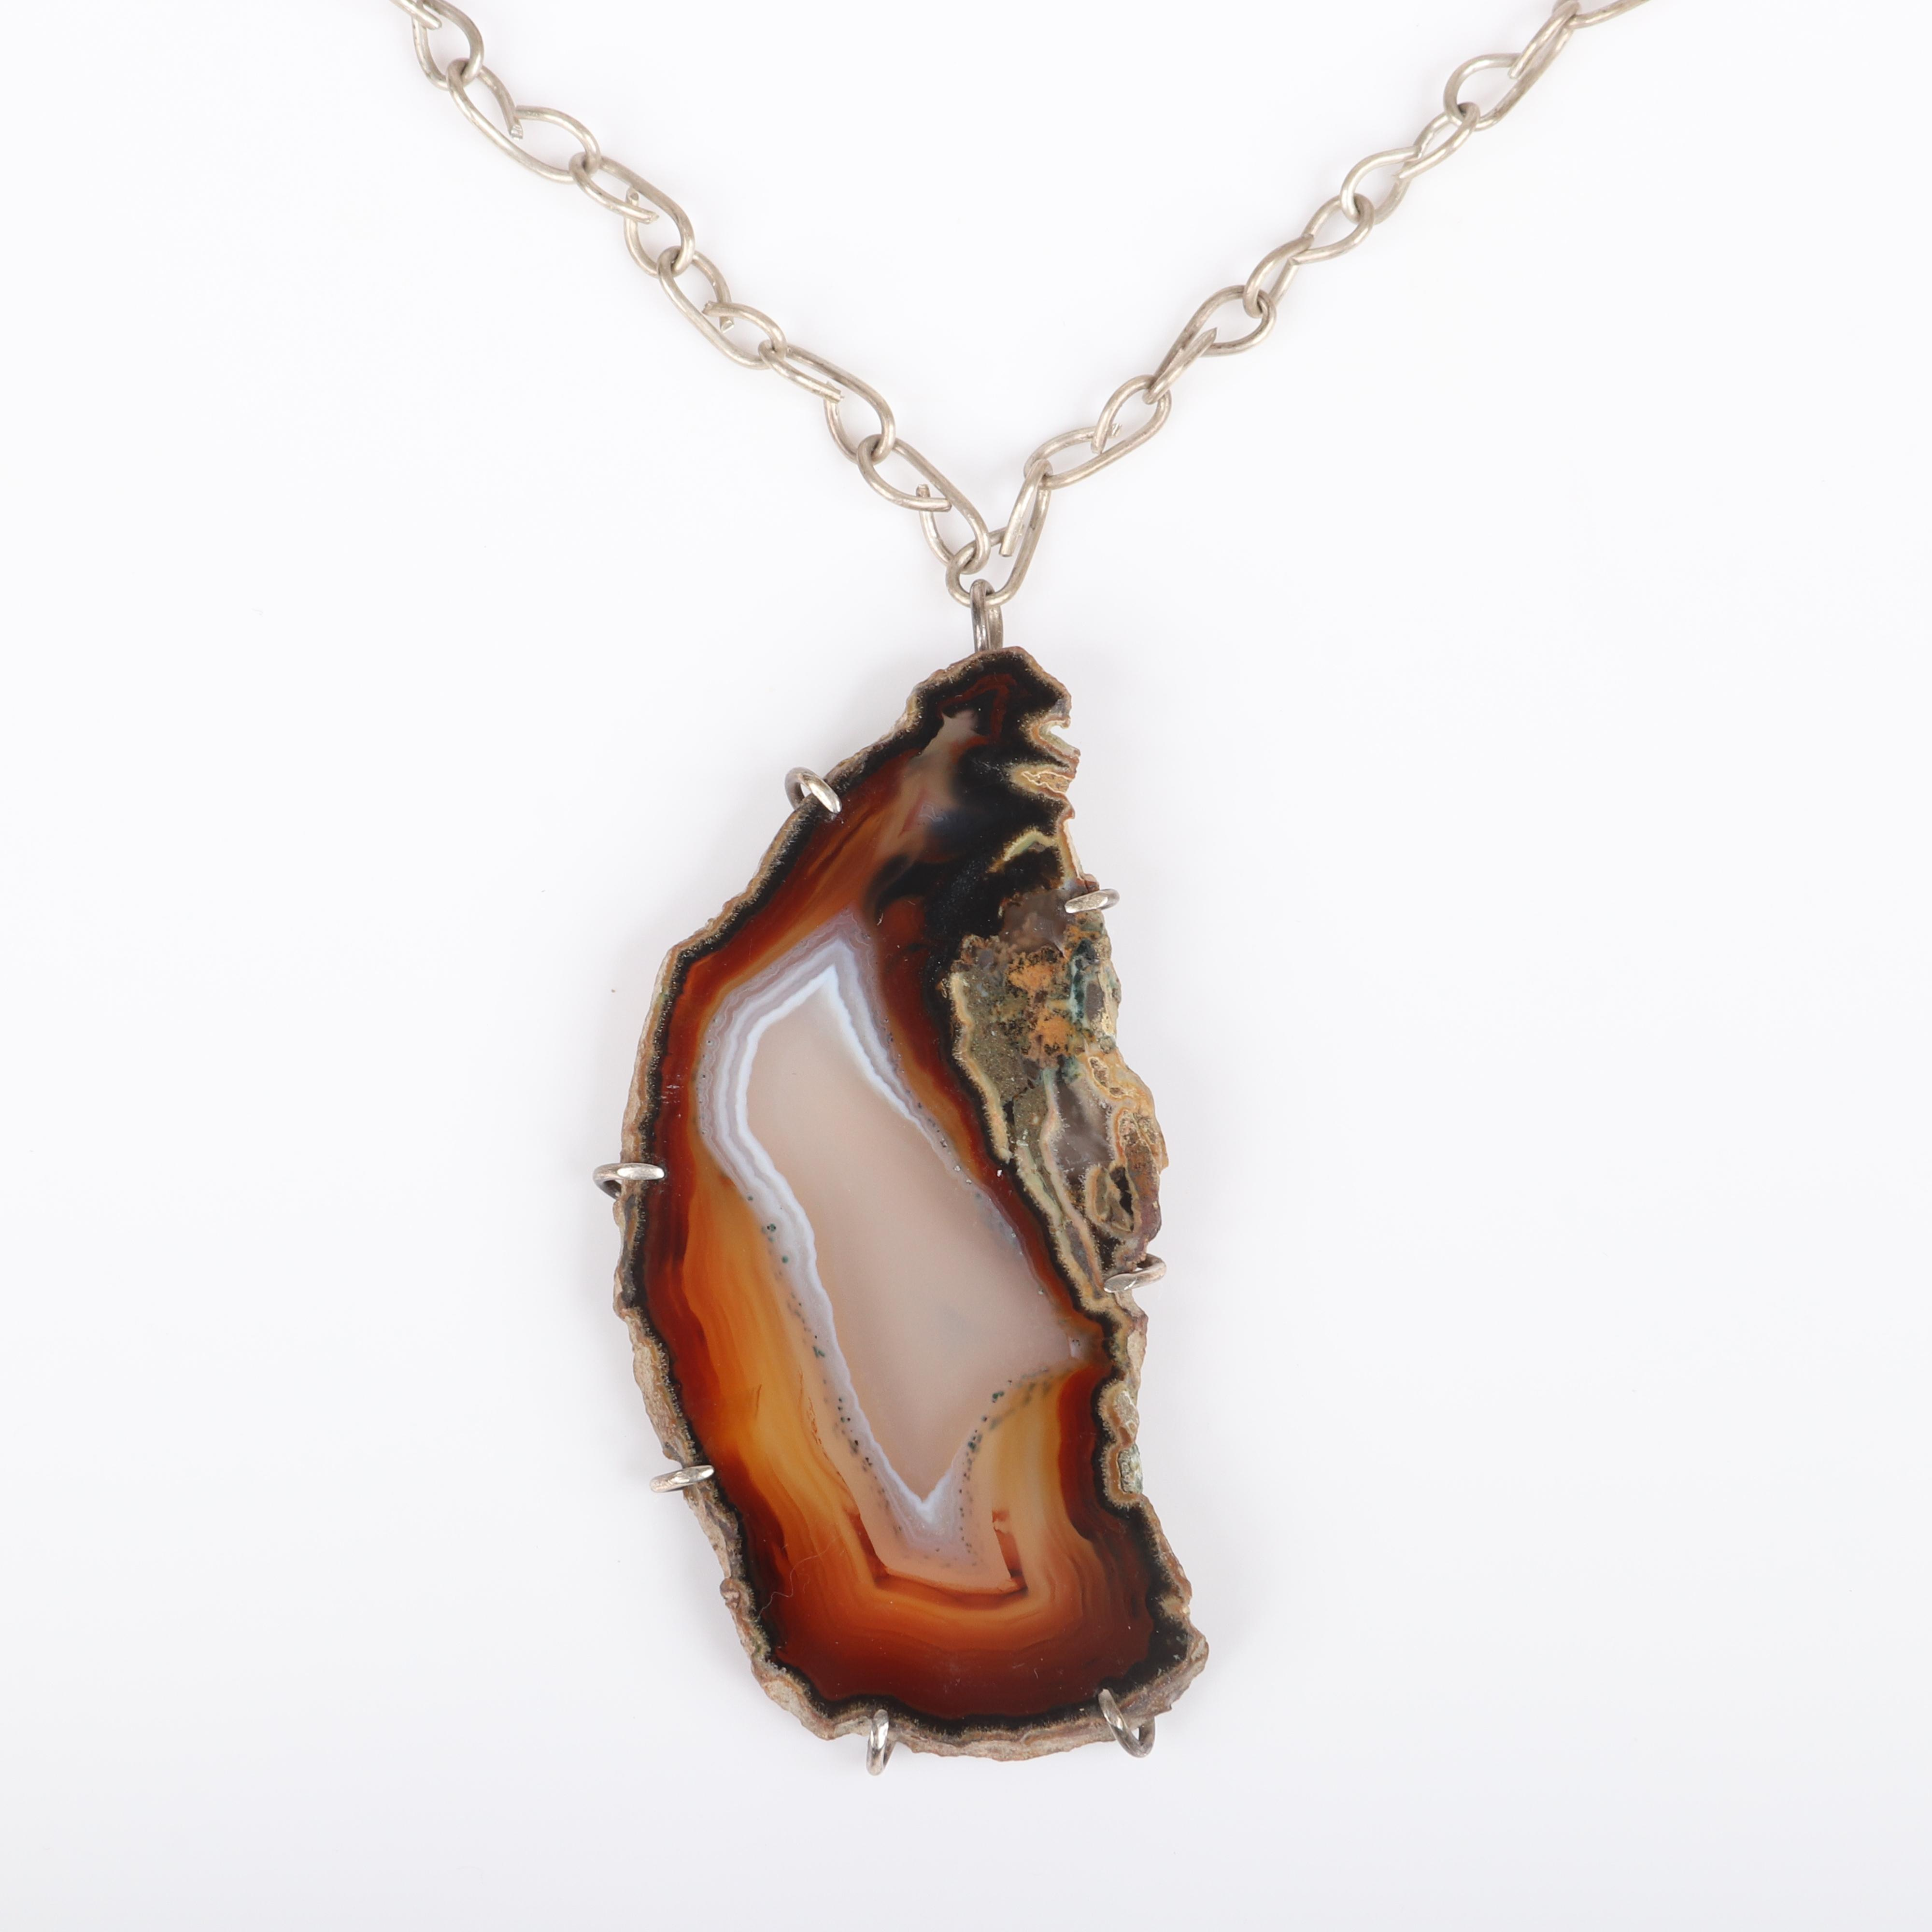 """Mildred Ball American Modernist sterling silver necklace with large sliced and polished natural edge agate pendant and handmade twisted chain and toggle clasp. 18""""L (chain), 3""""H x 1 1/2""""W (pendant)"""